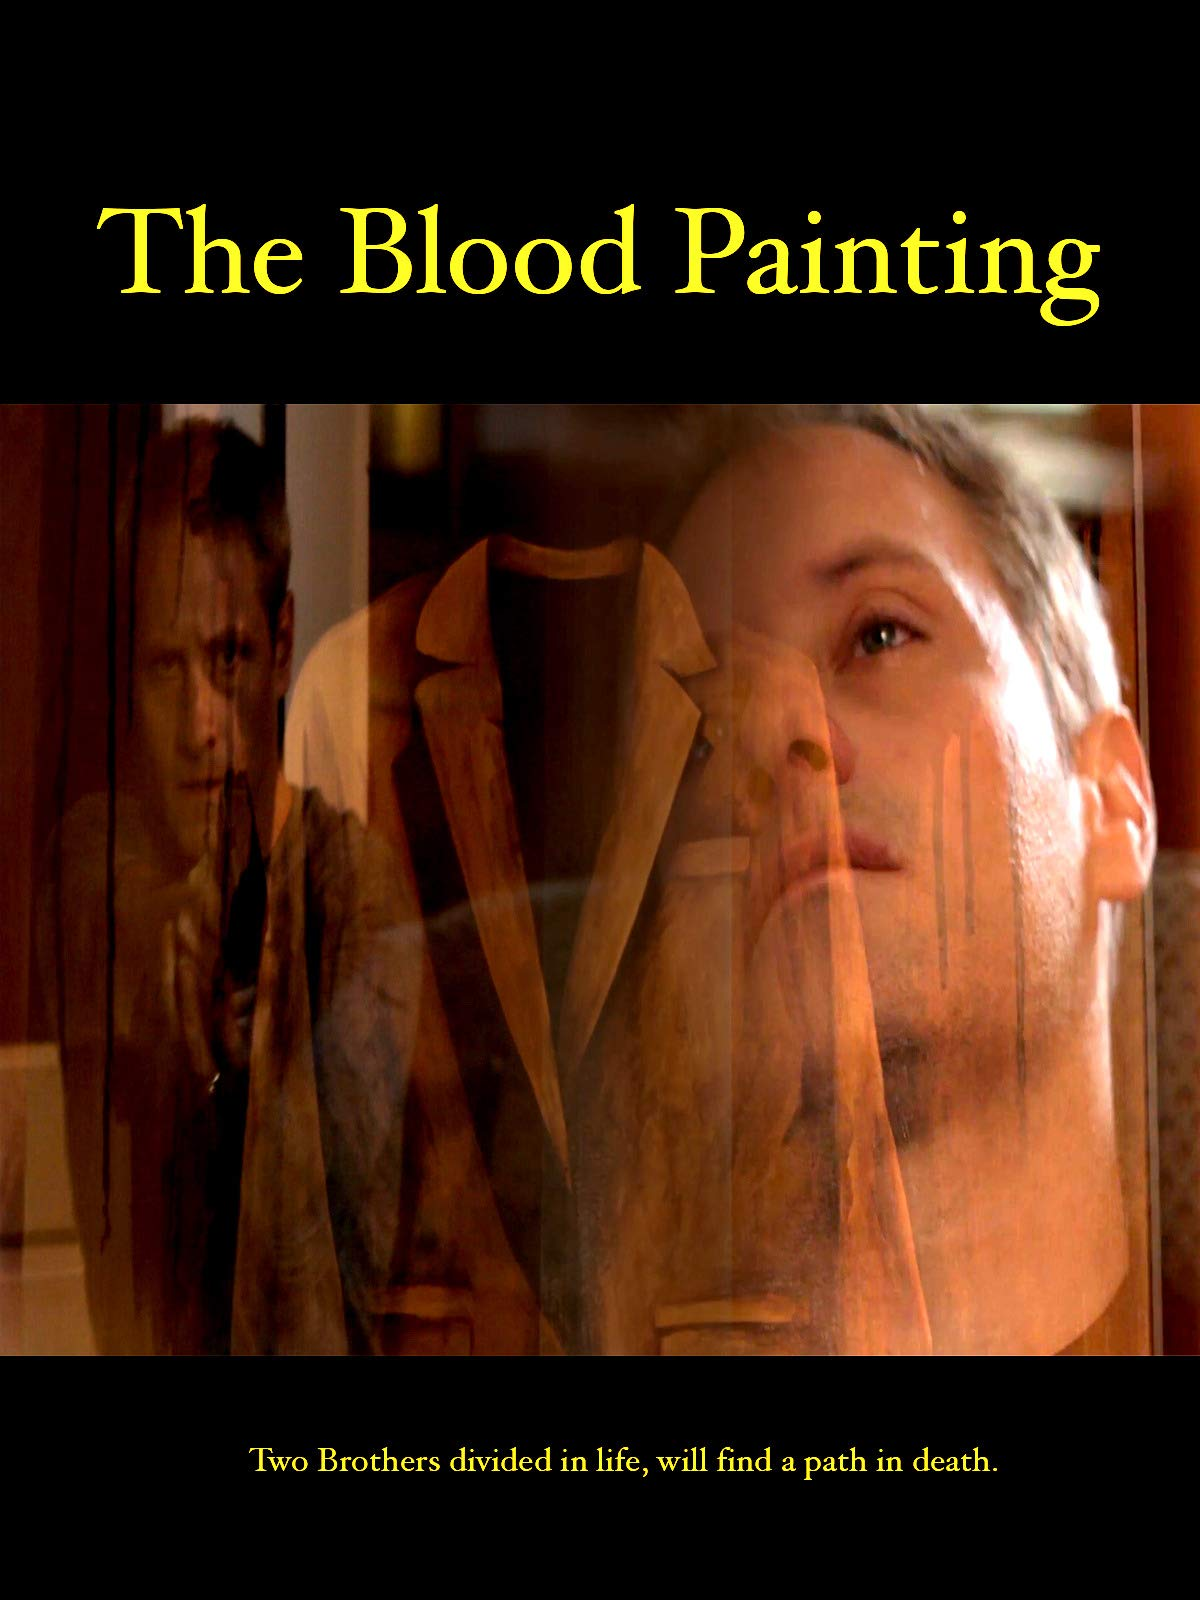 The Blood Painting